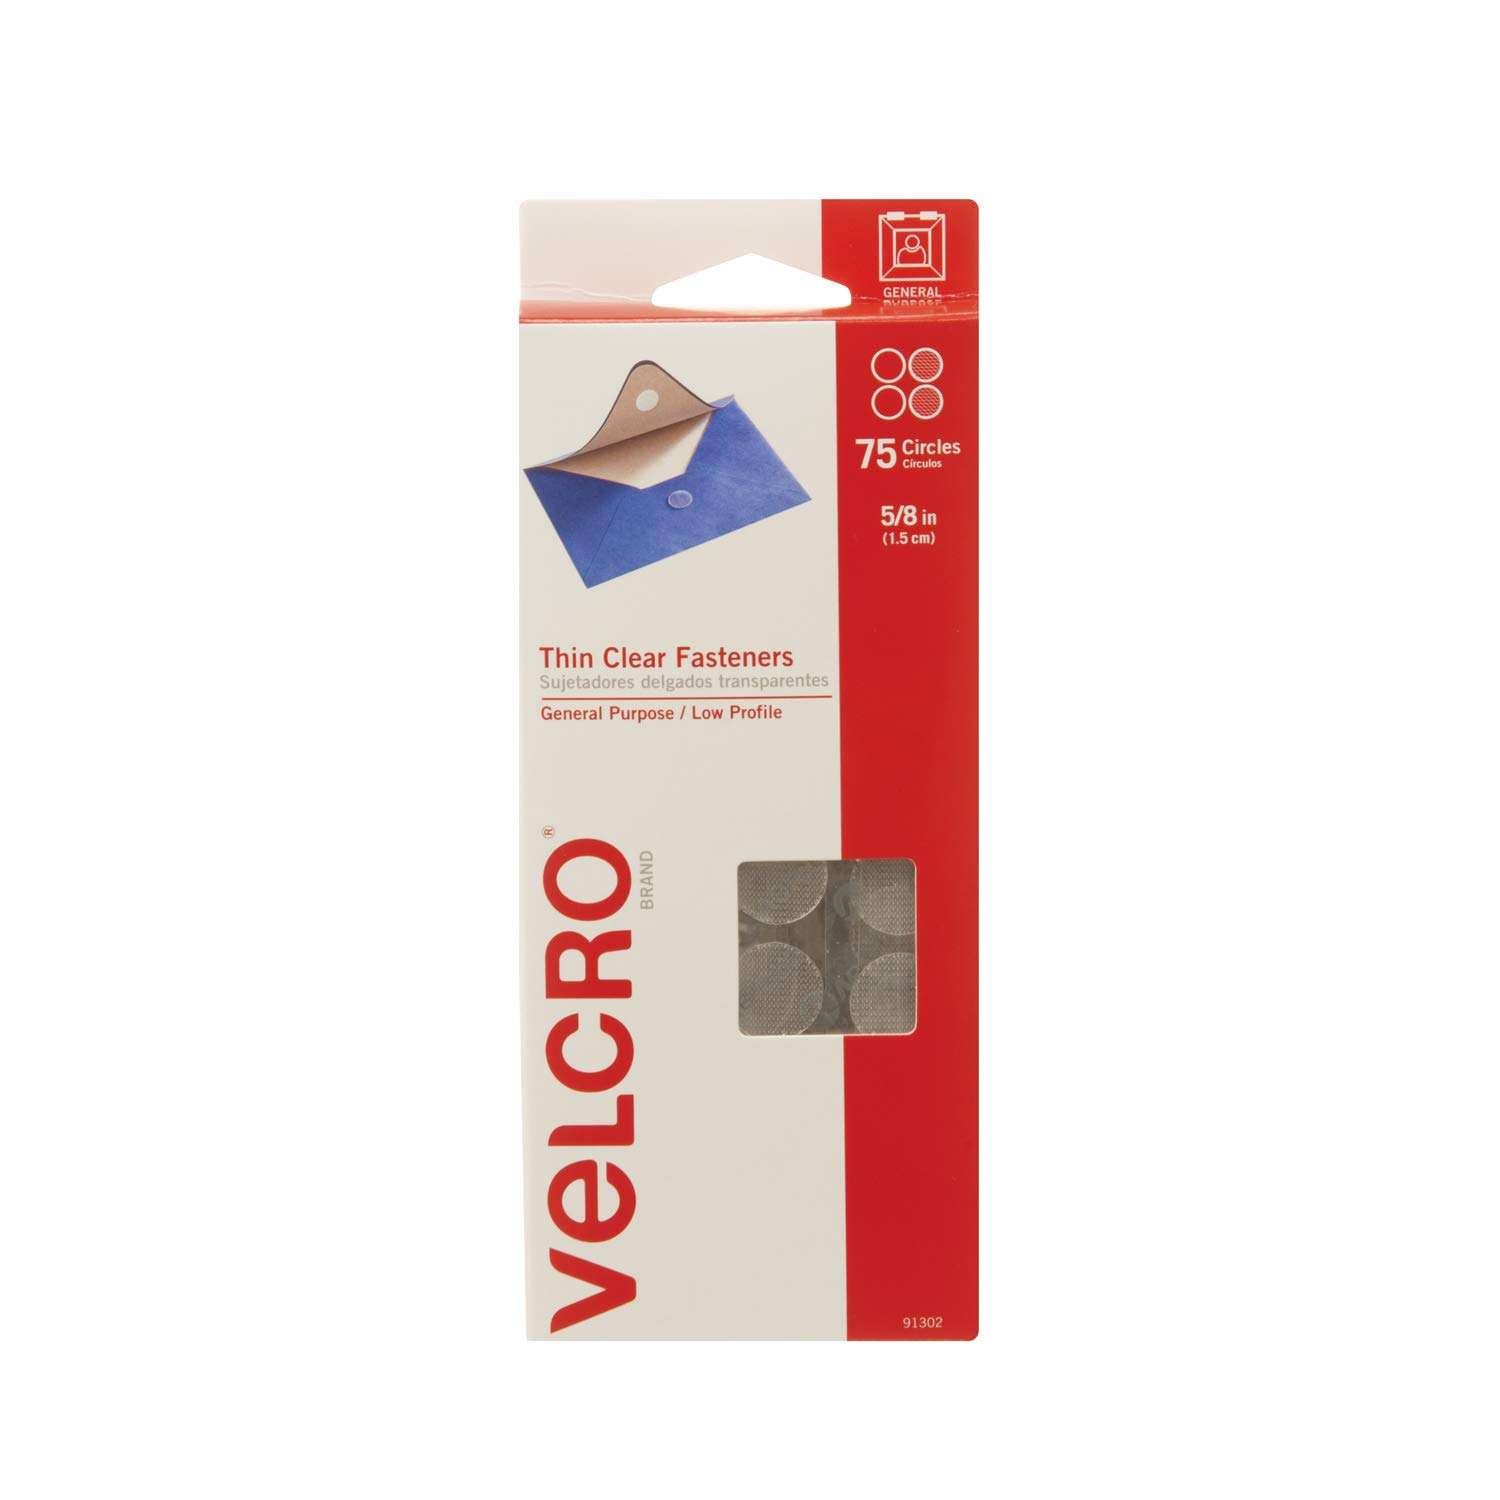 VELCRO Brand - Sticky Back - 5/8 Coins, 75 Sets - Clear Velcro Industries B.V 91302